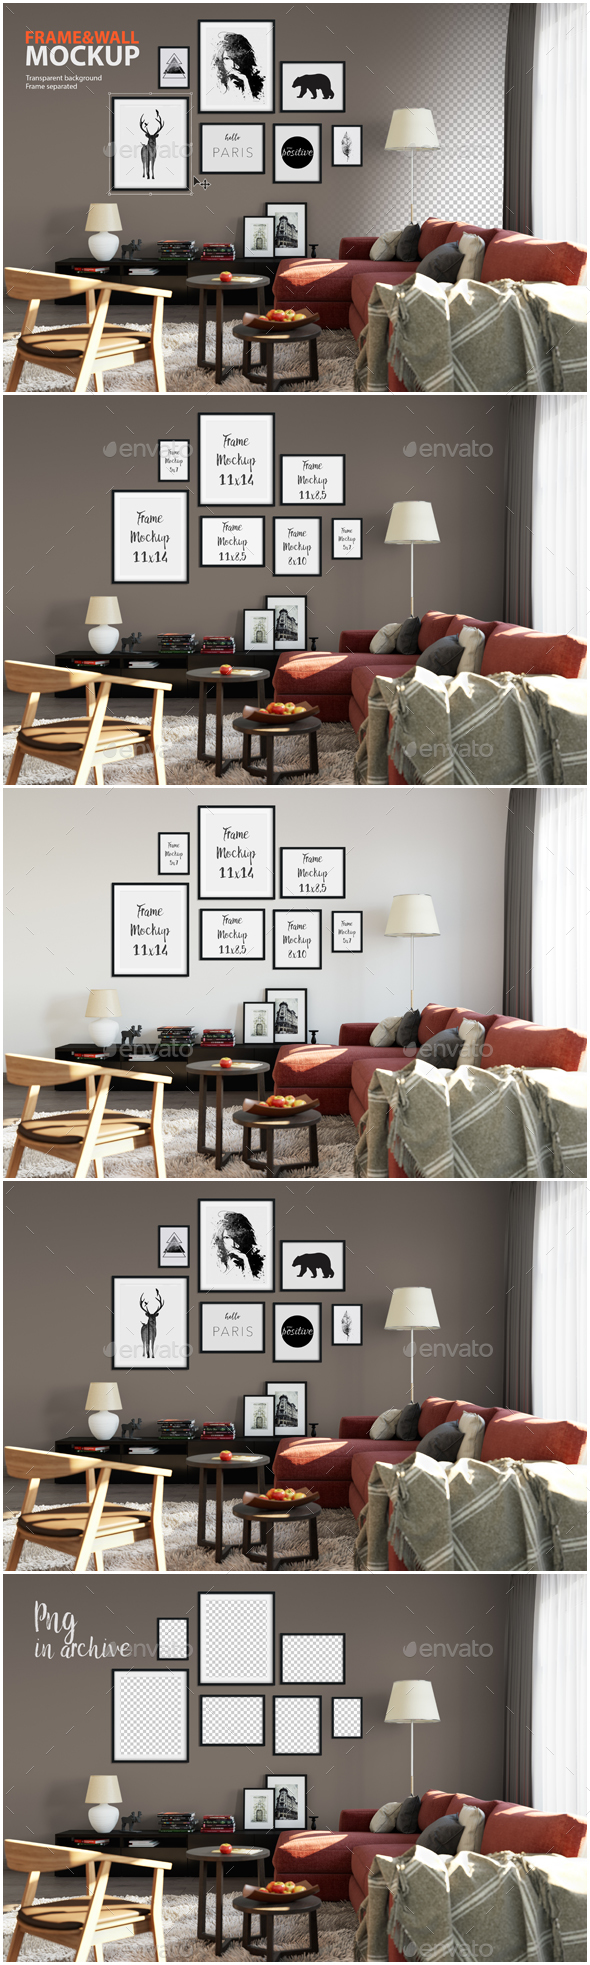 Frame & Wall Mockup 02 - Product Mock-Ups Graphics